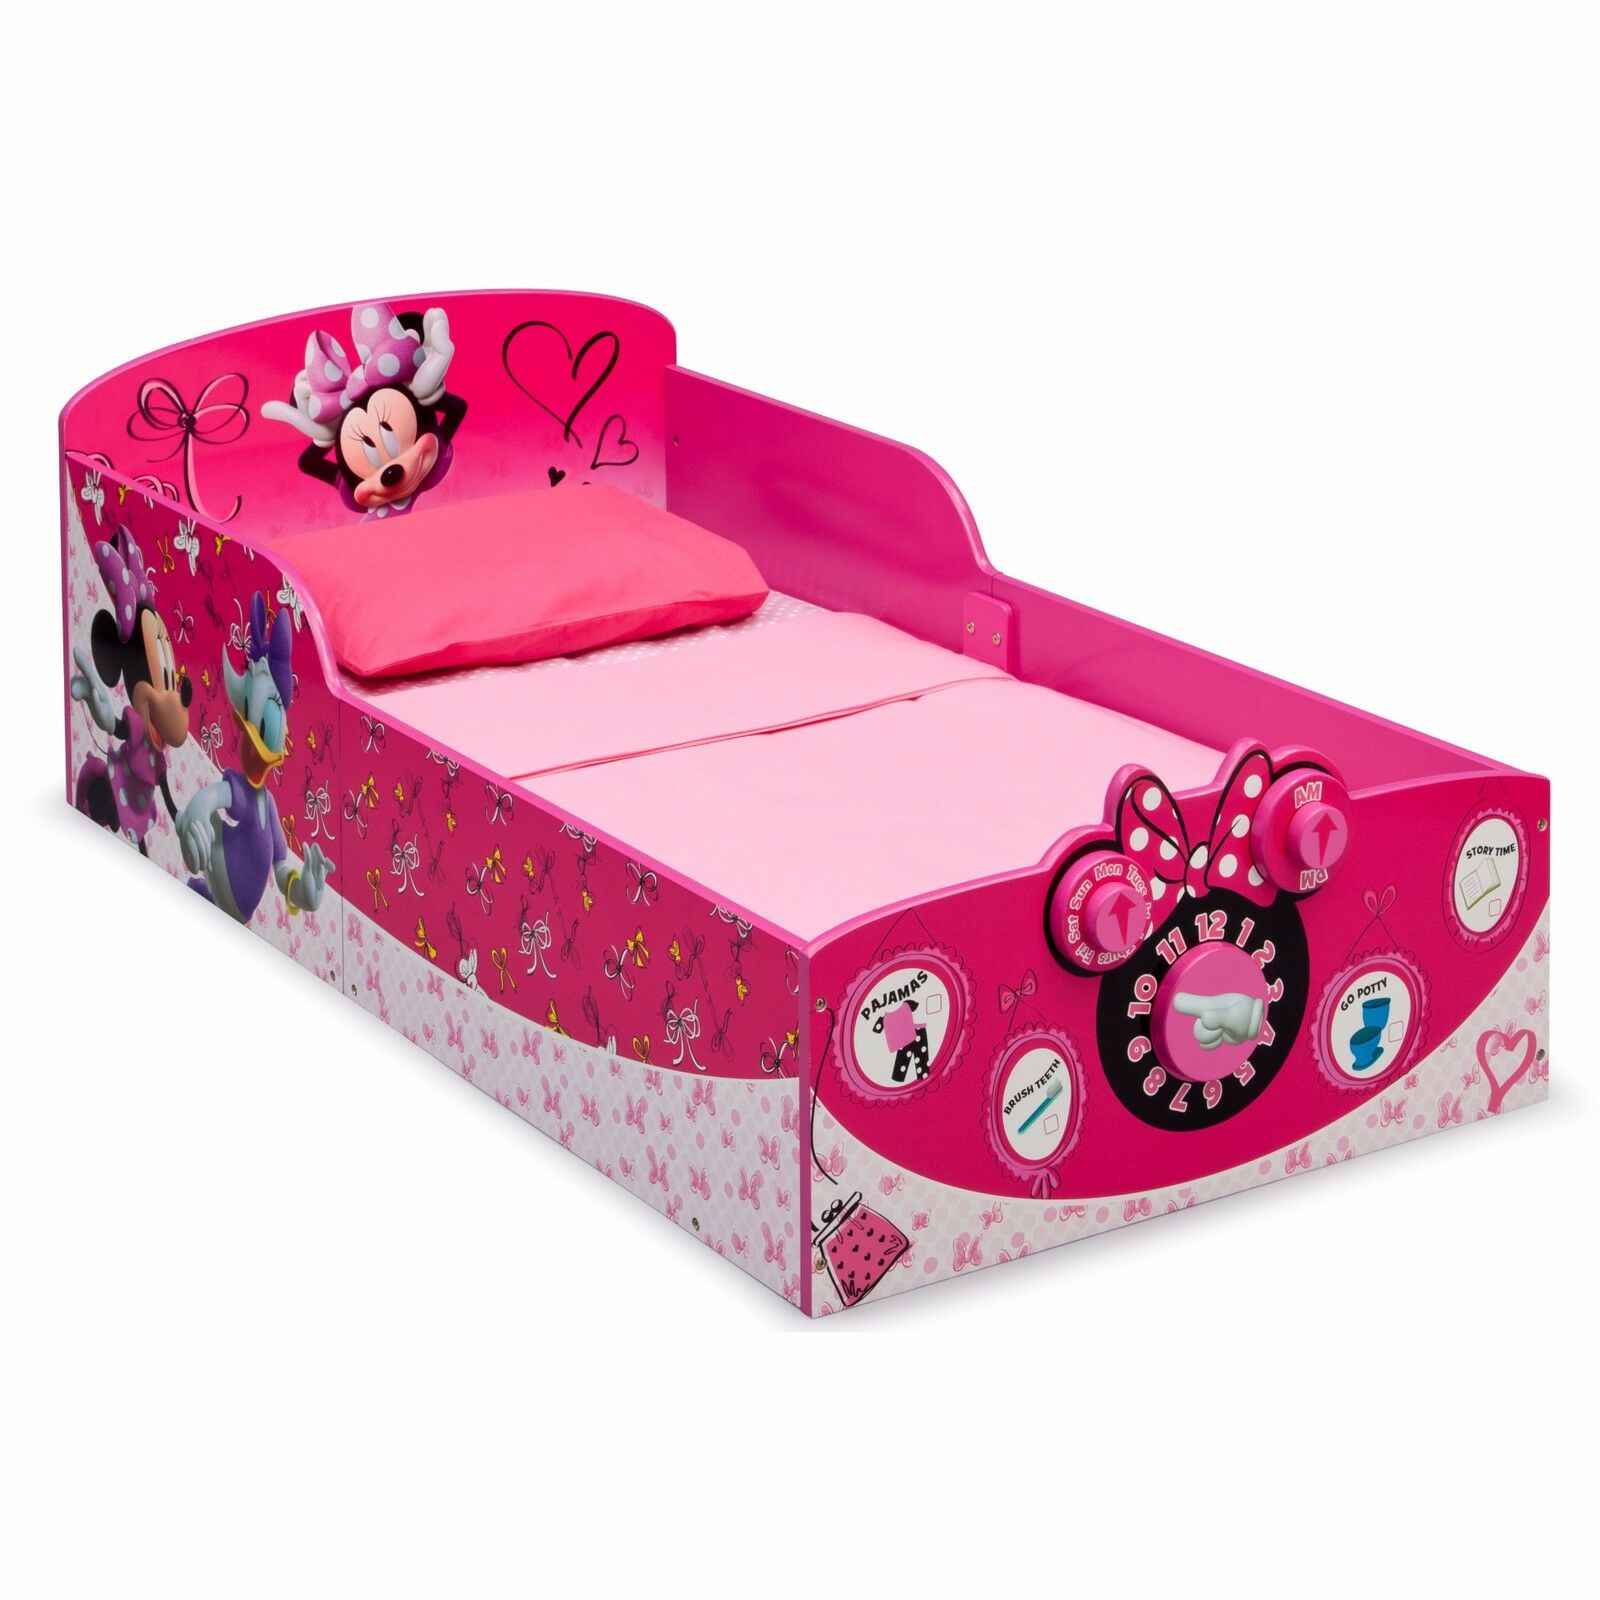 Toddler Beds For Girls Minnie Mouse Pink Bedroom Furniture B